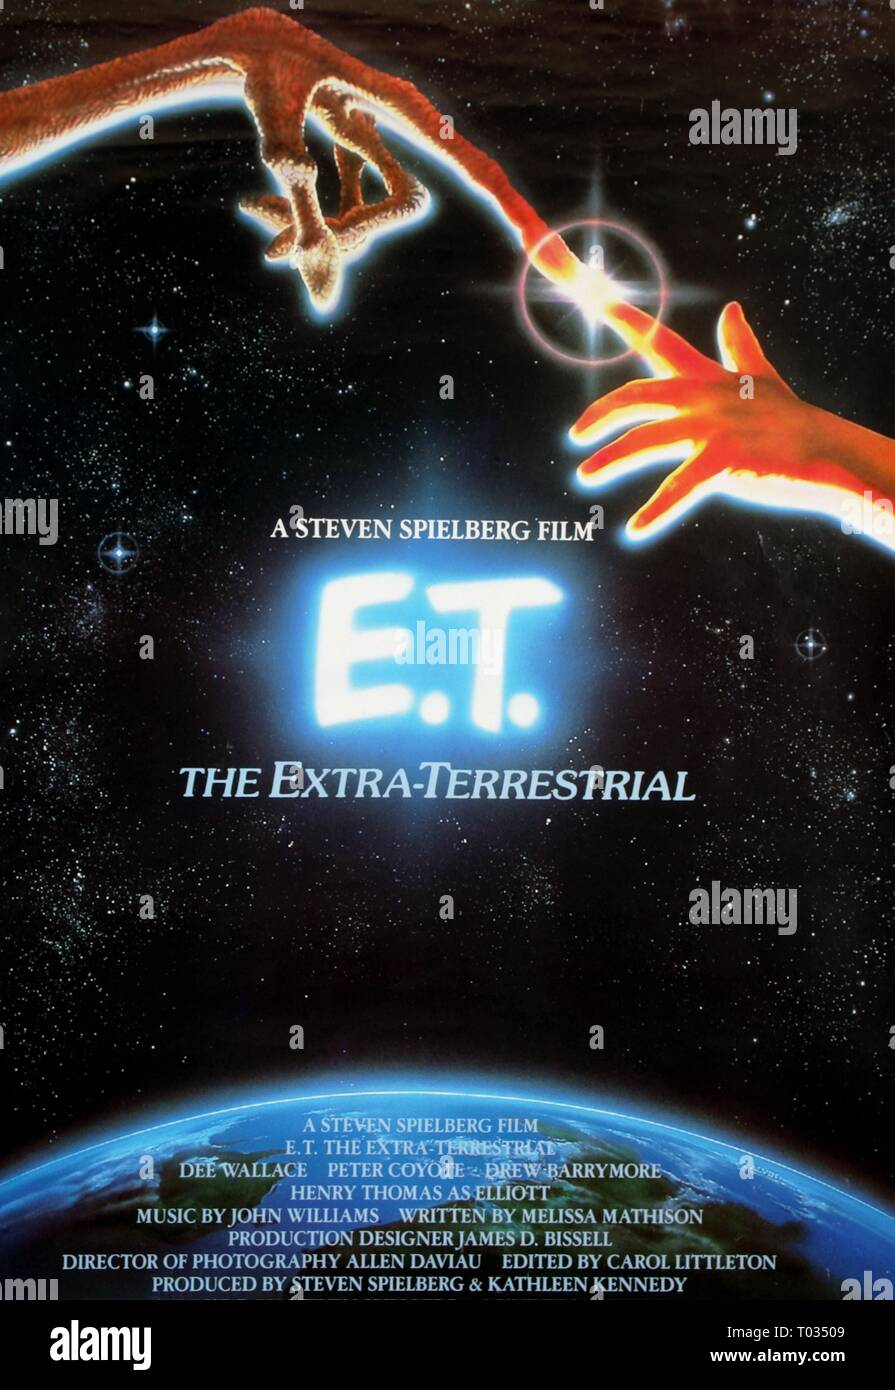 Film Poster E T The Extra Terrestrial 1982 Stock Photo Alamy